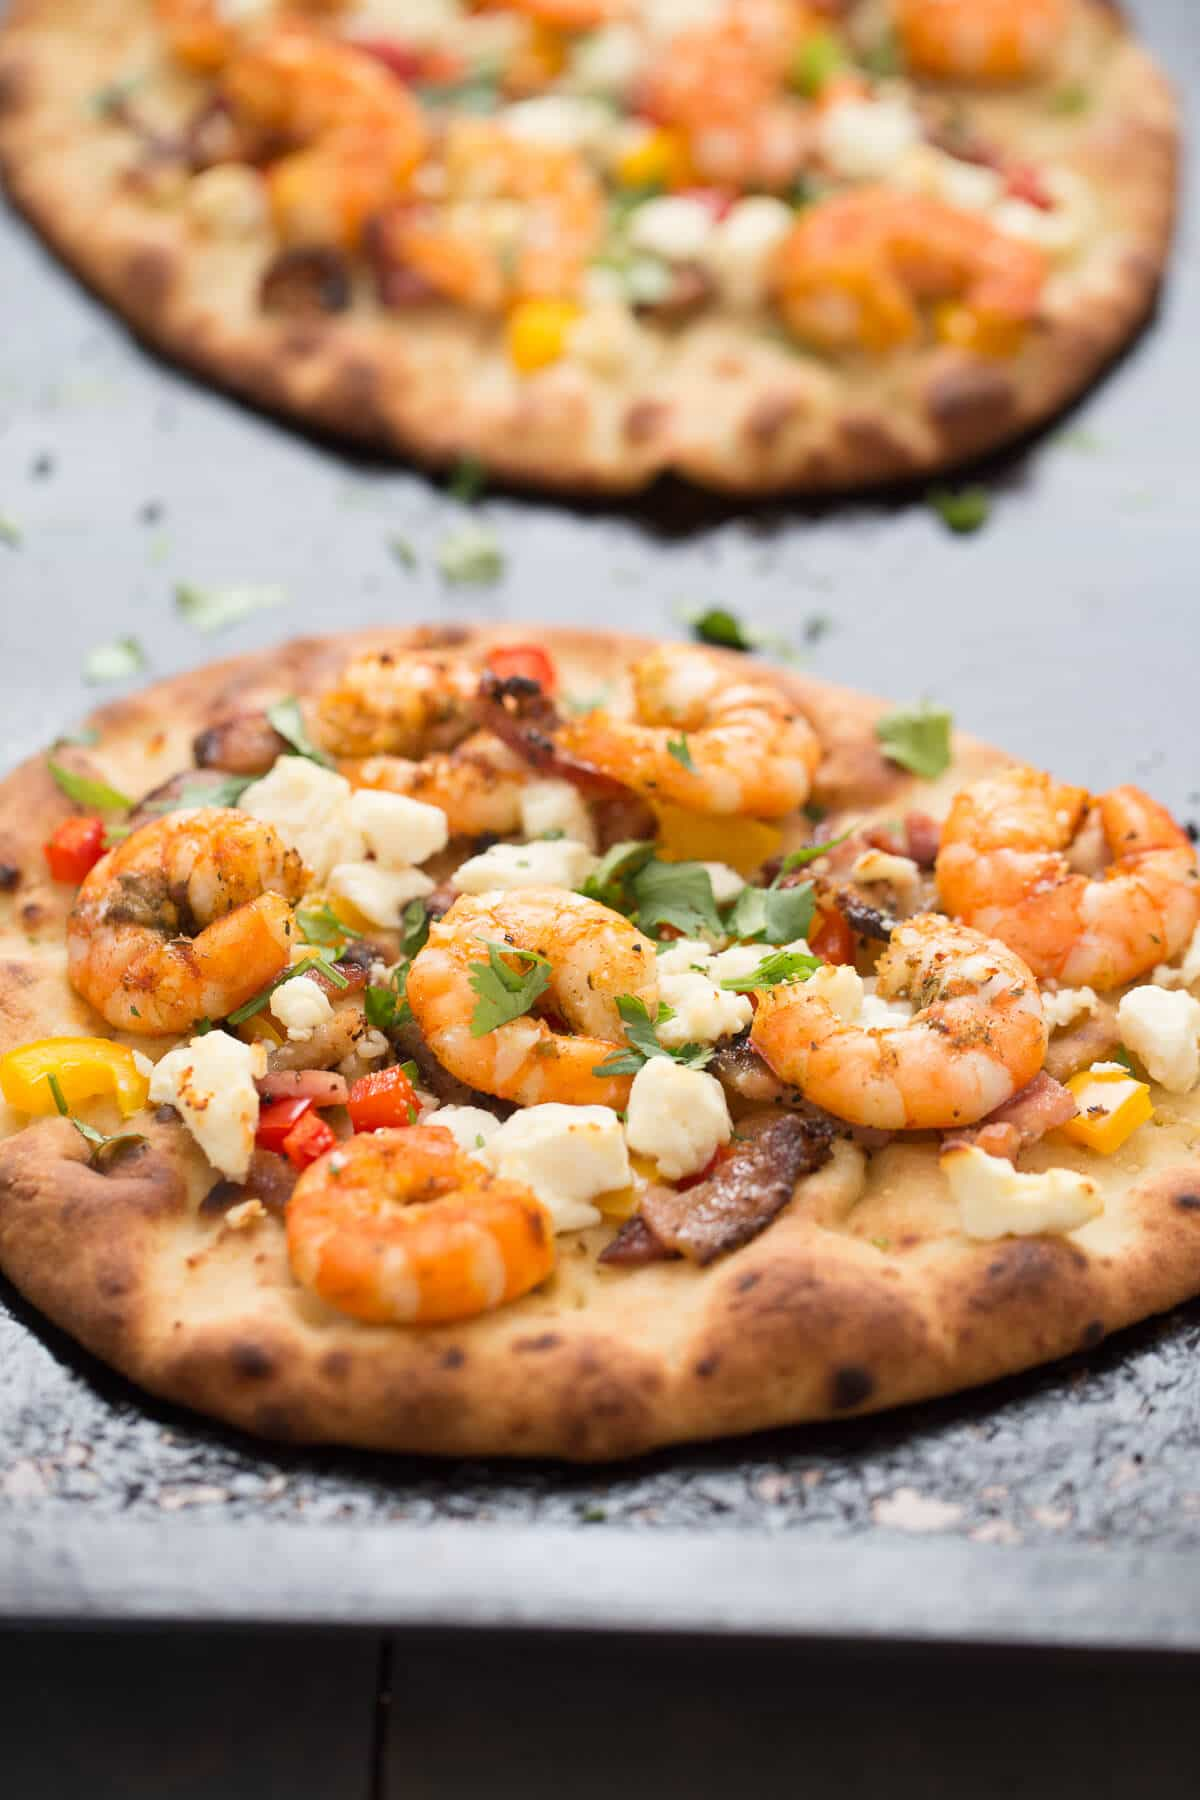 A Cajun shrimp pizza made a naan bread that takes minutes to make! Serve this as a meal or even as an appetizer!